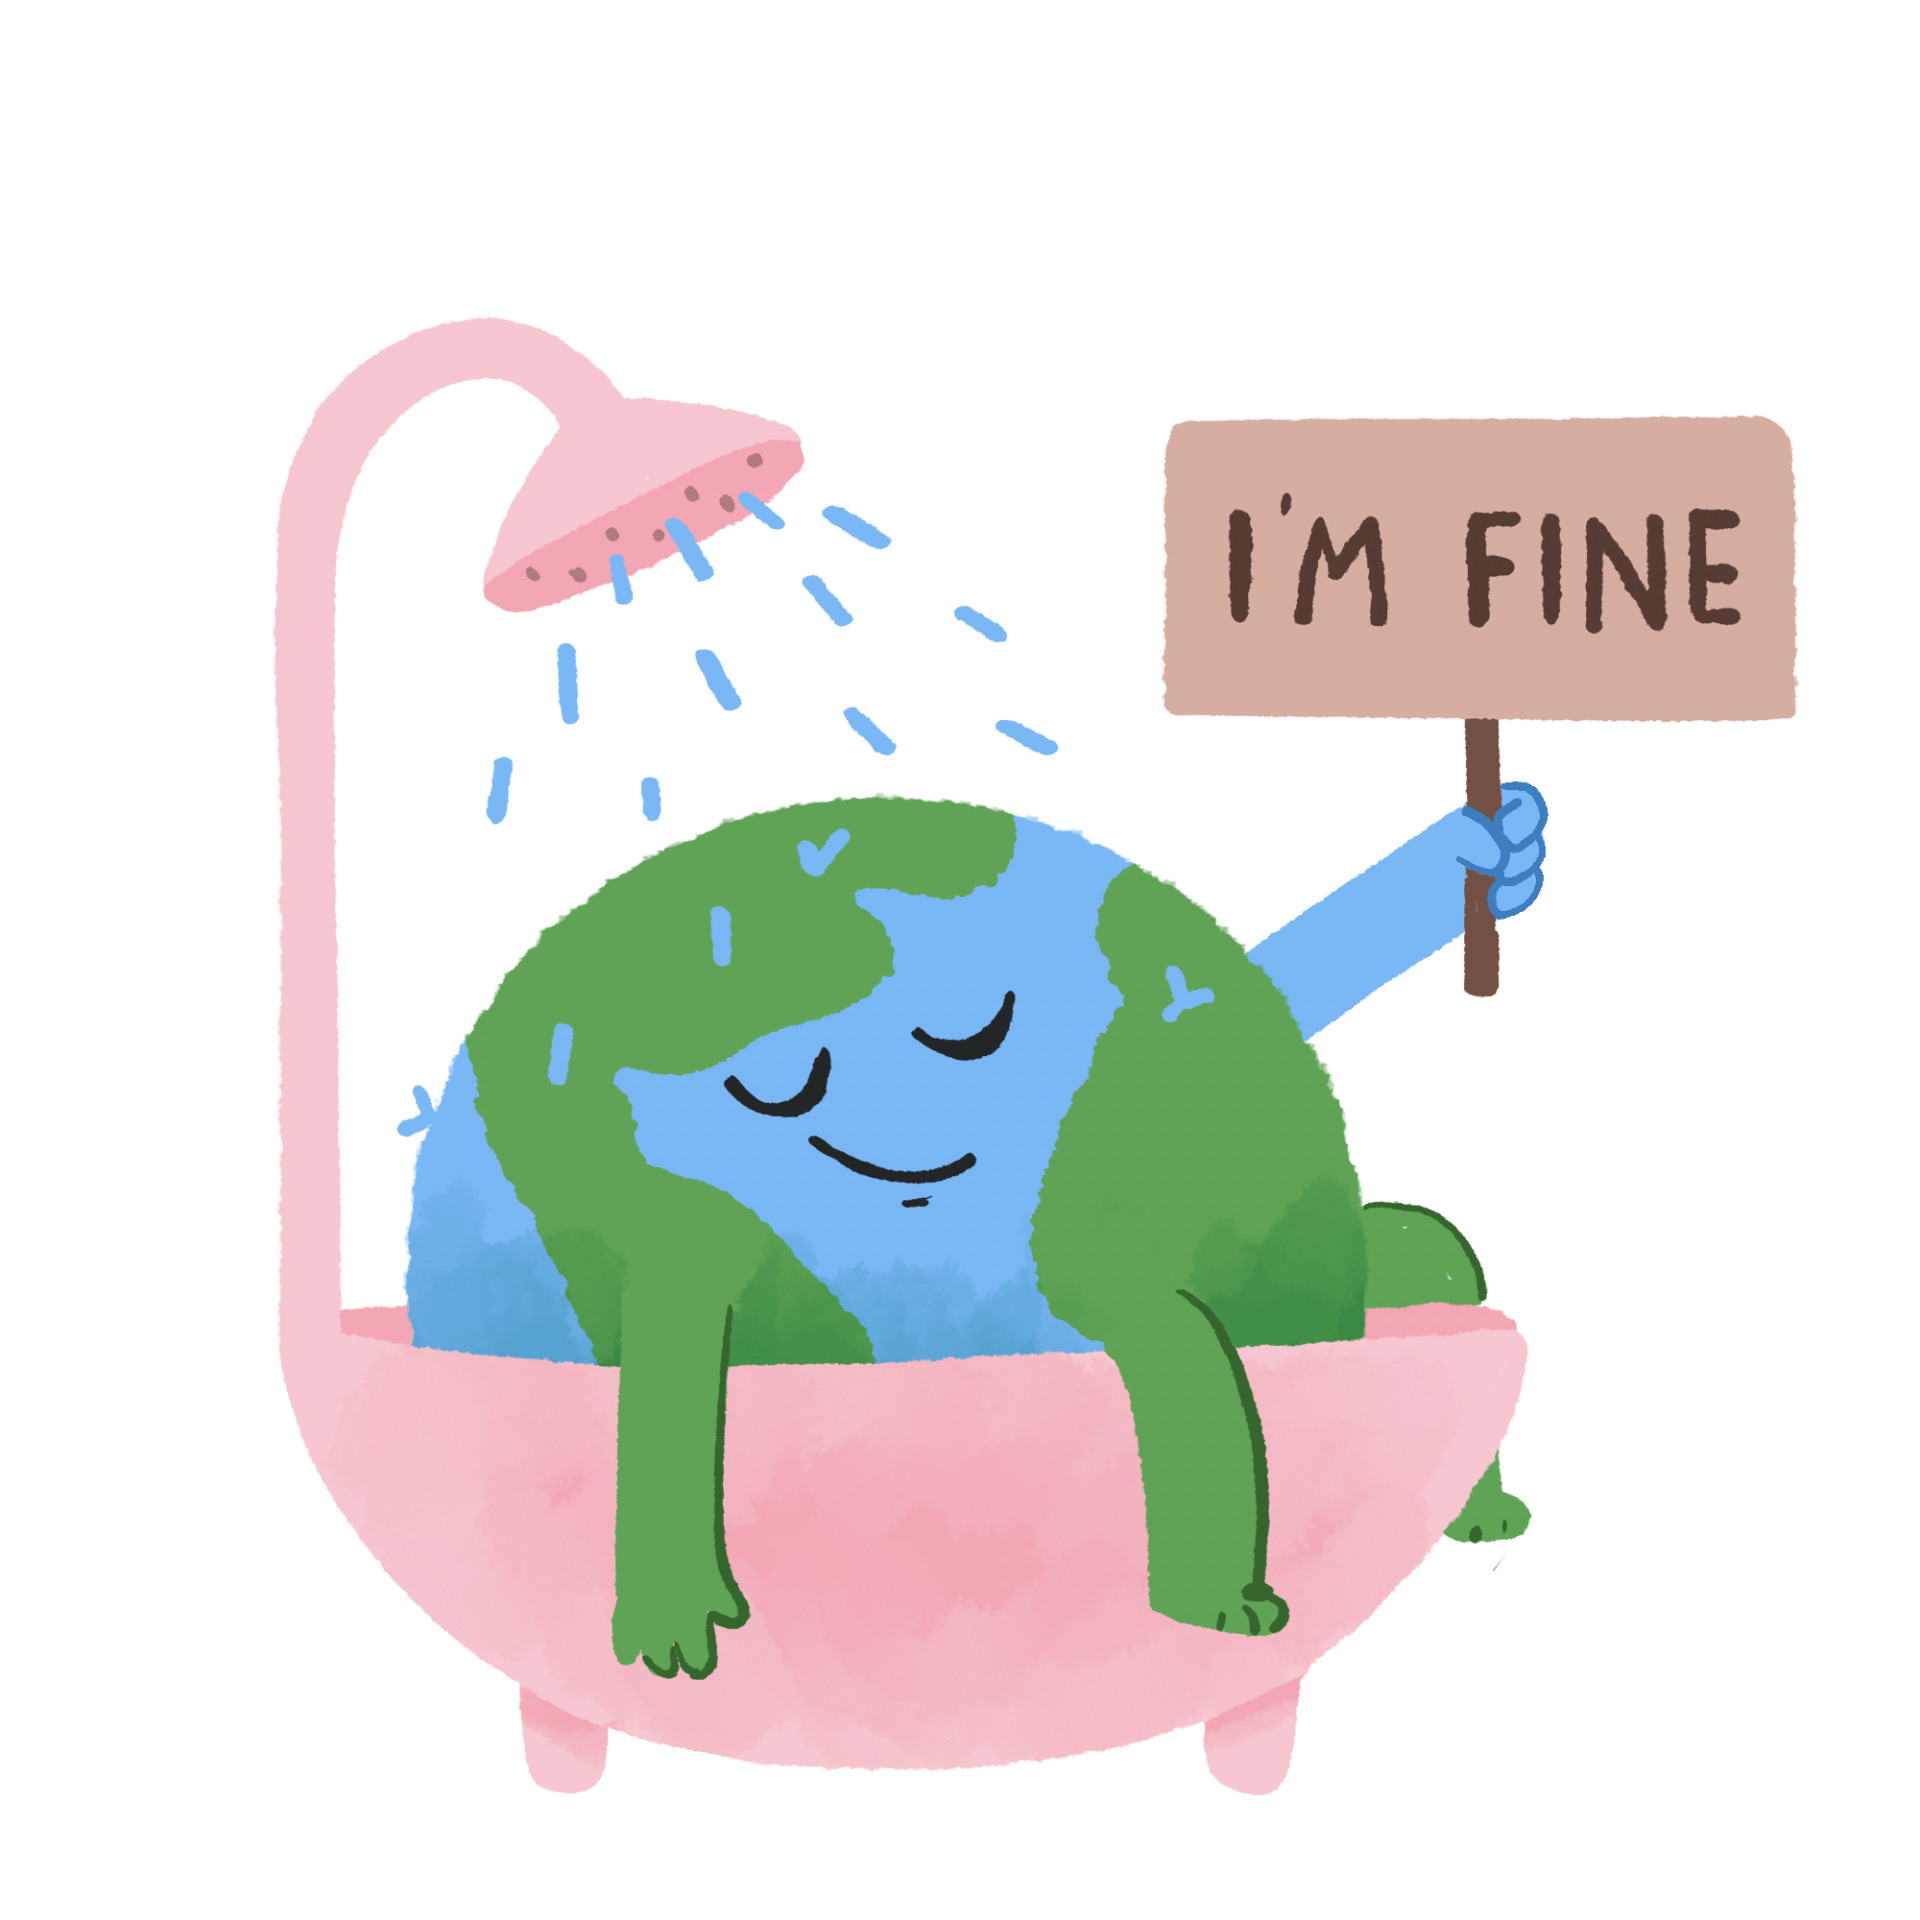 earth in bathtub for cooling down, holding sign: I am fine